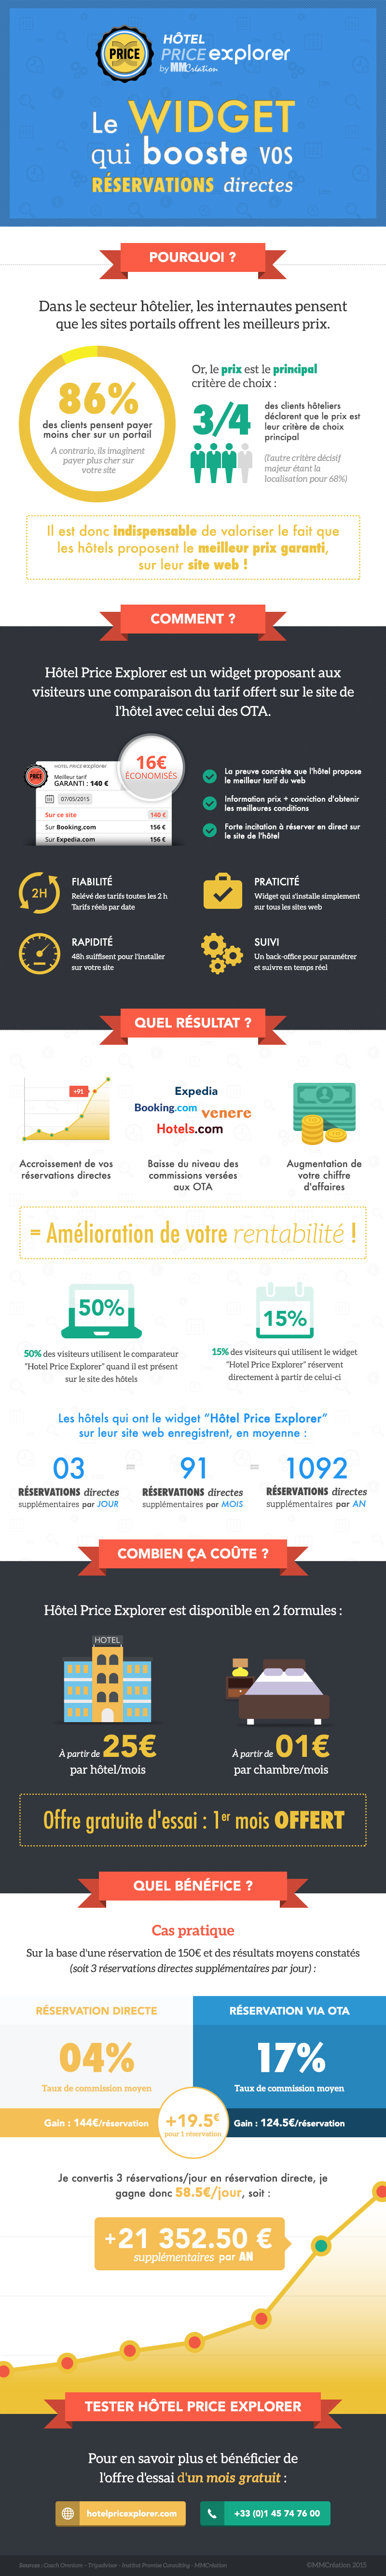 Infographie_HPE2